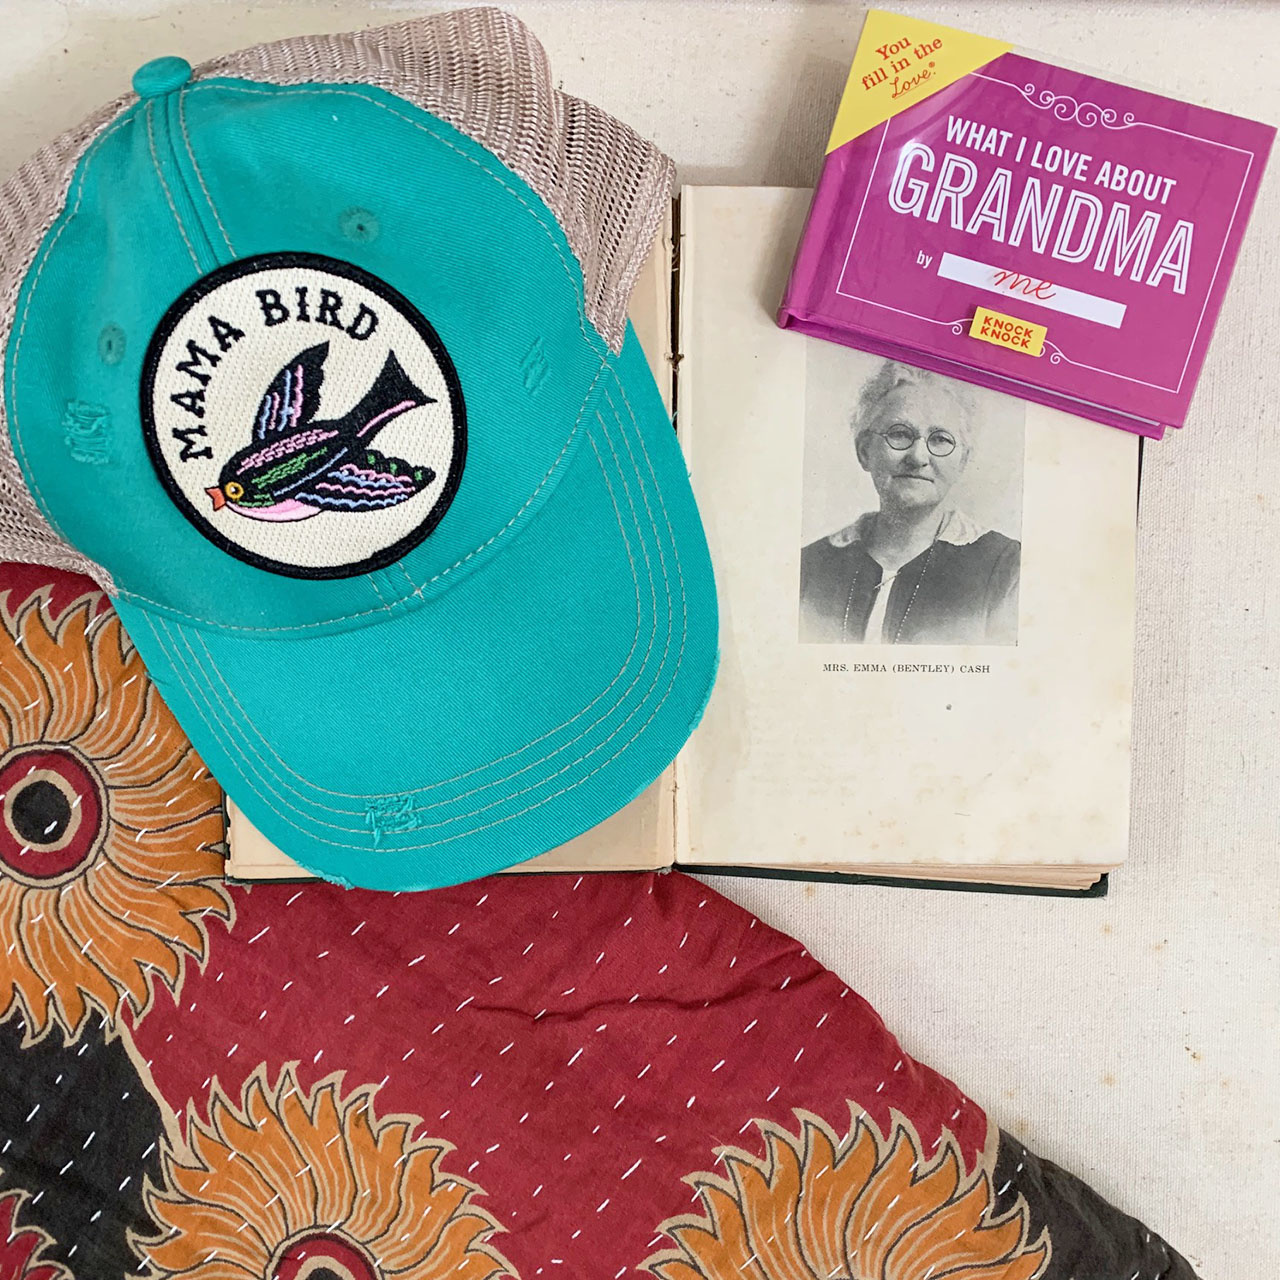 Grandma Gifts for Mother's Day